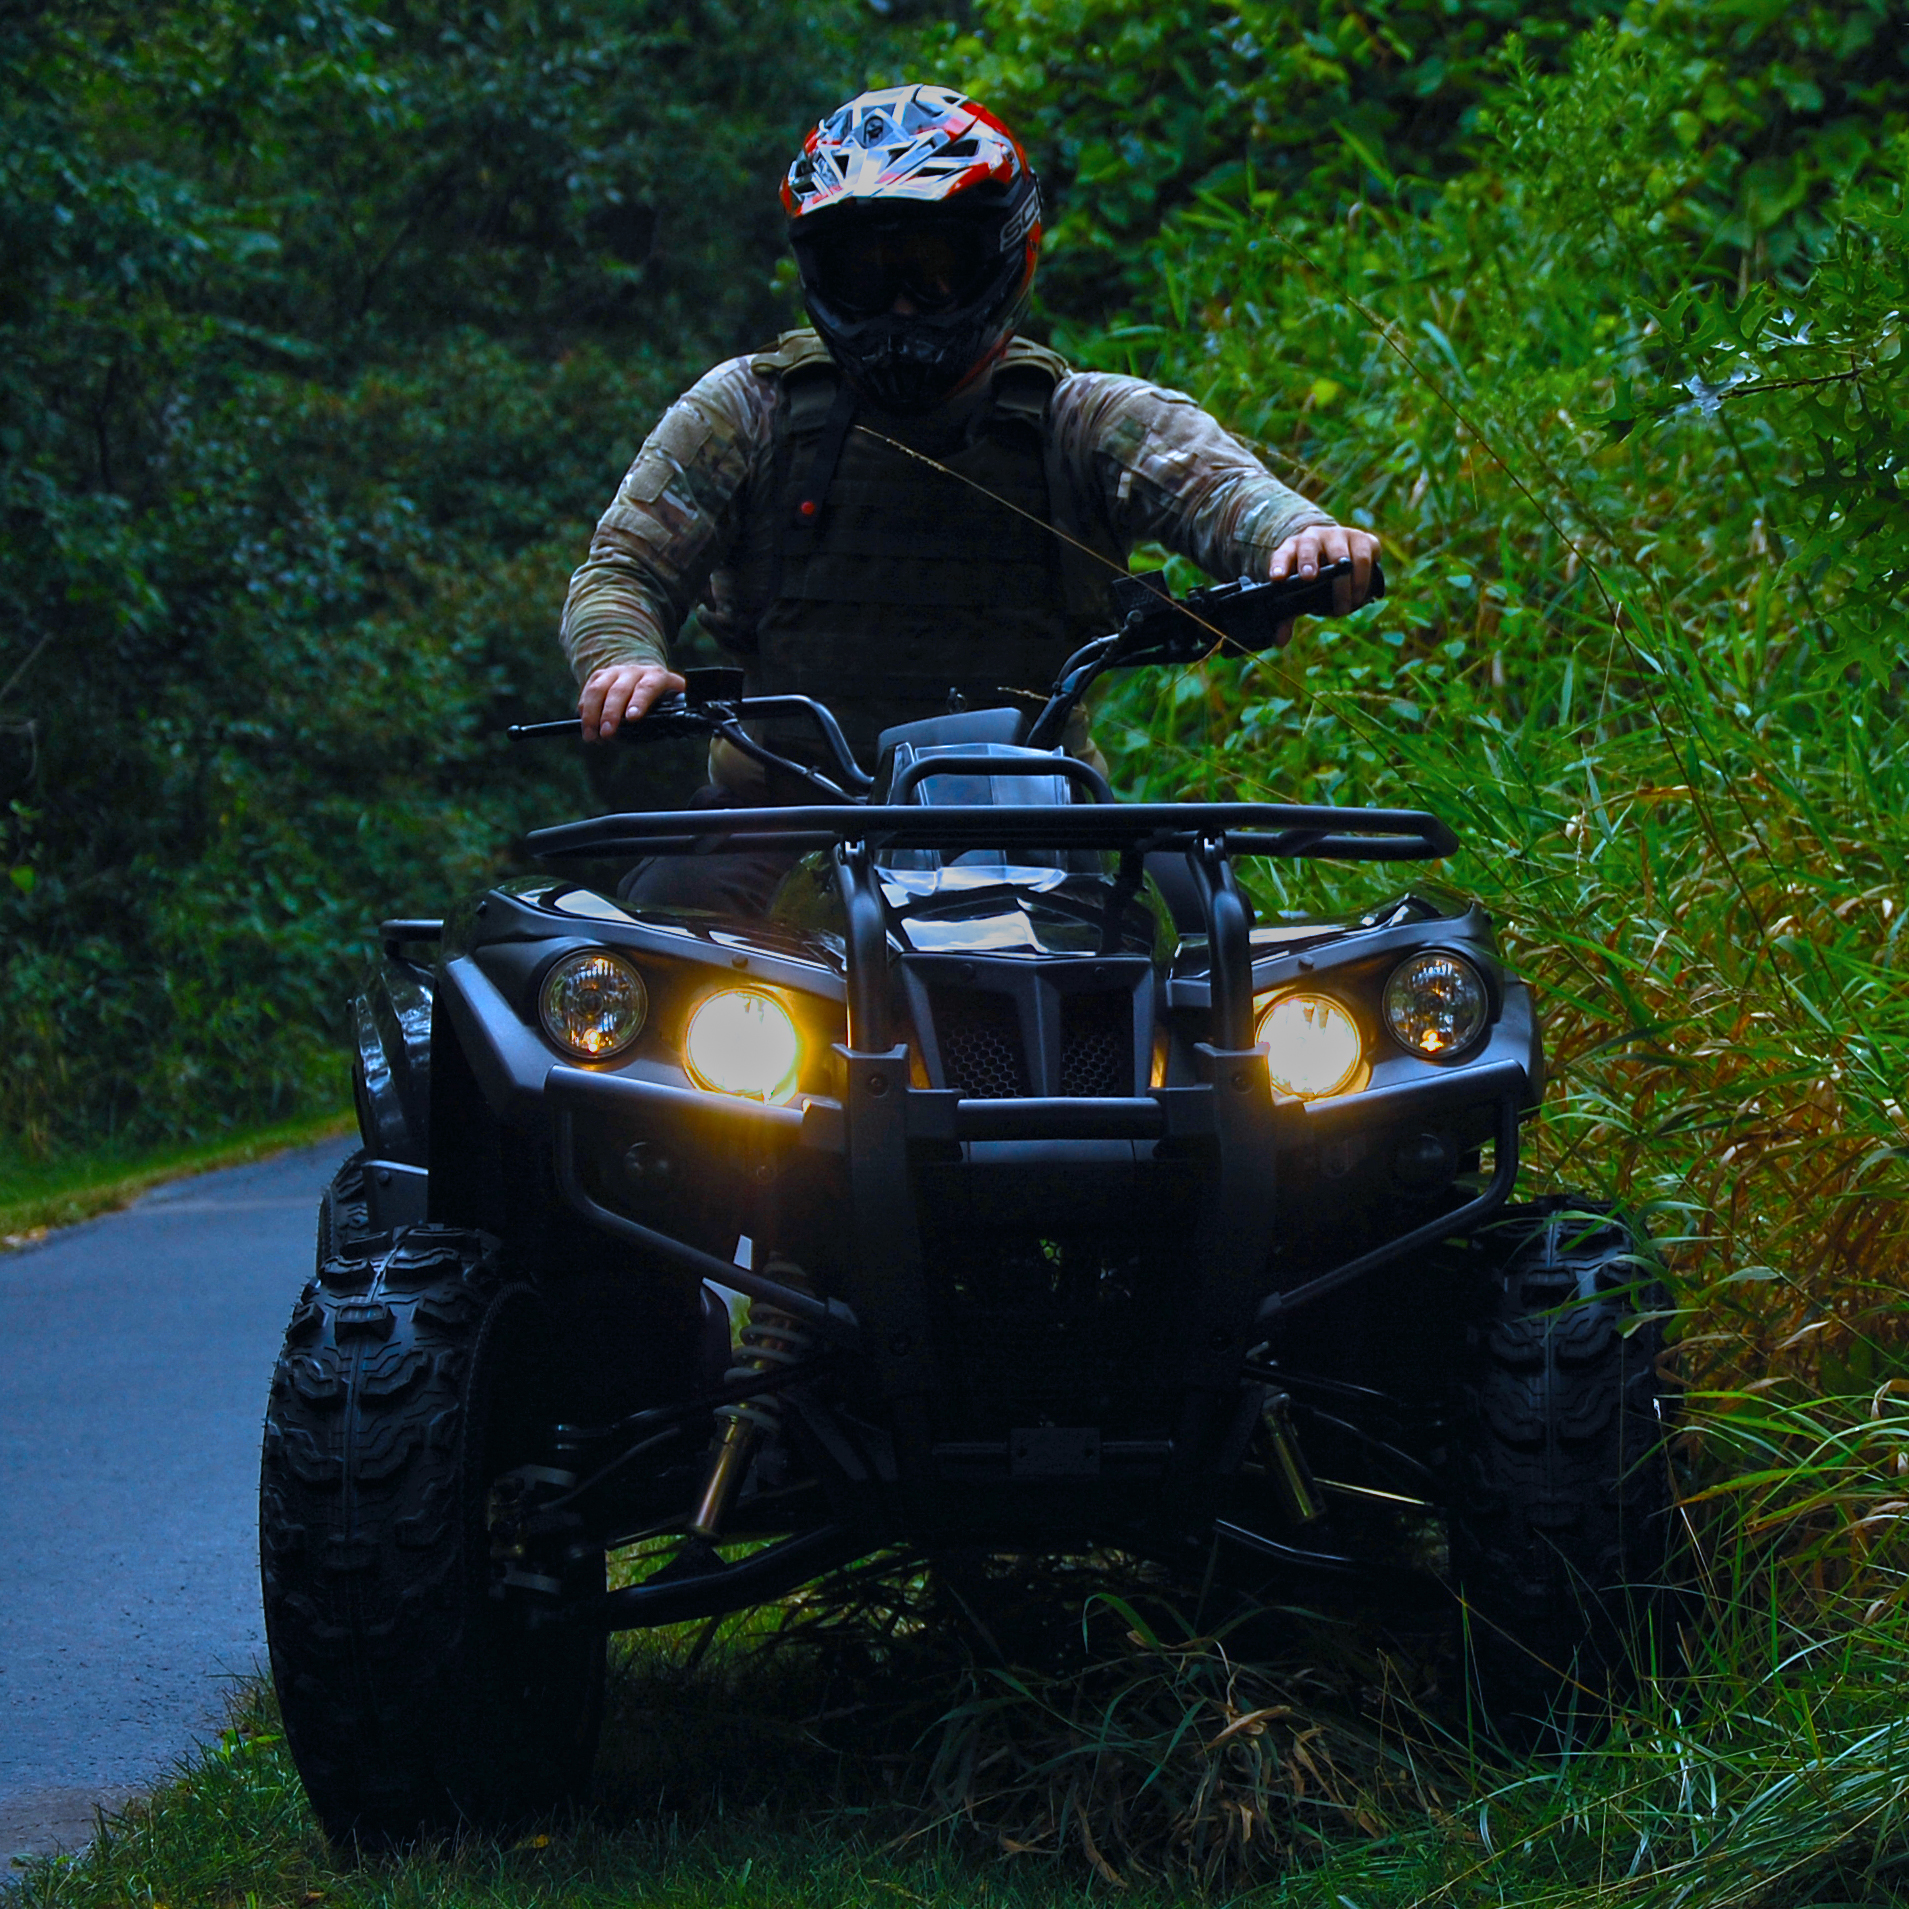 DRR USA Stealth Electric ATV Military Vest at Night .jpg